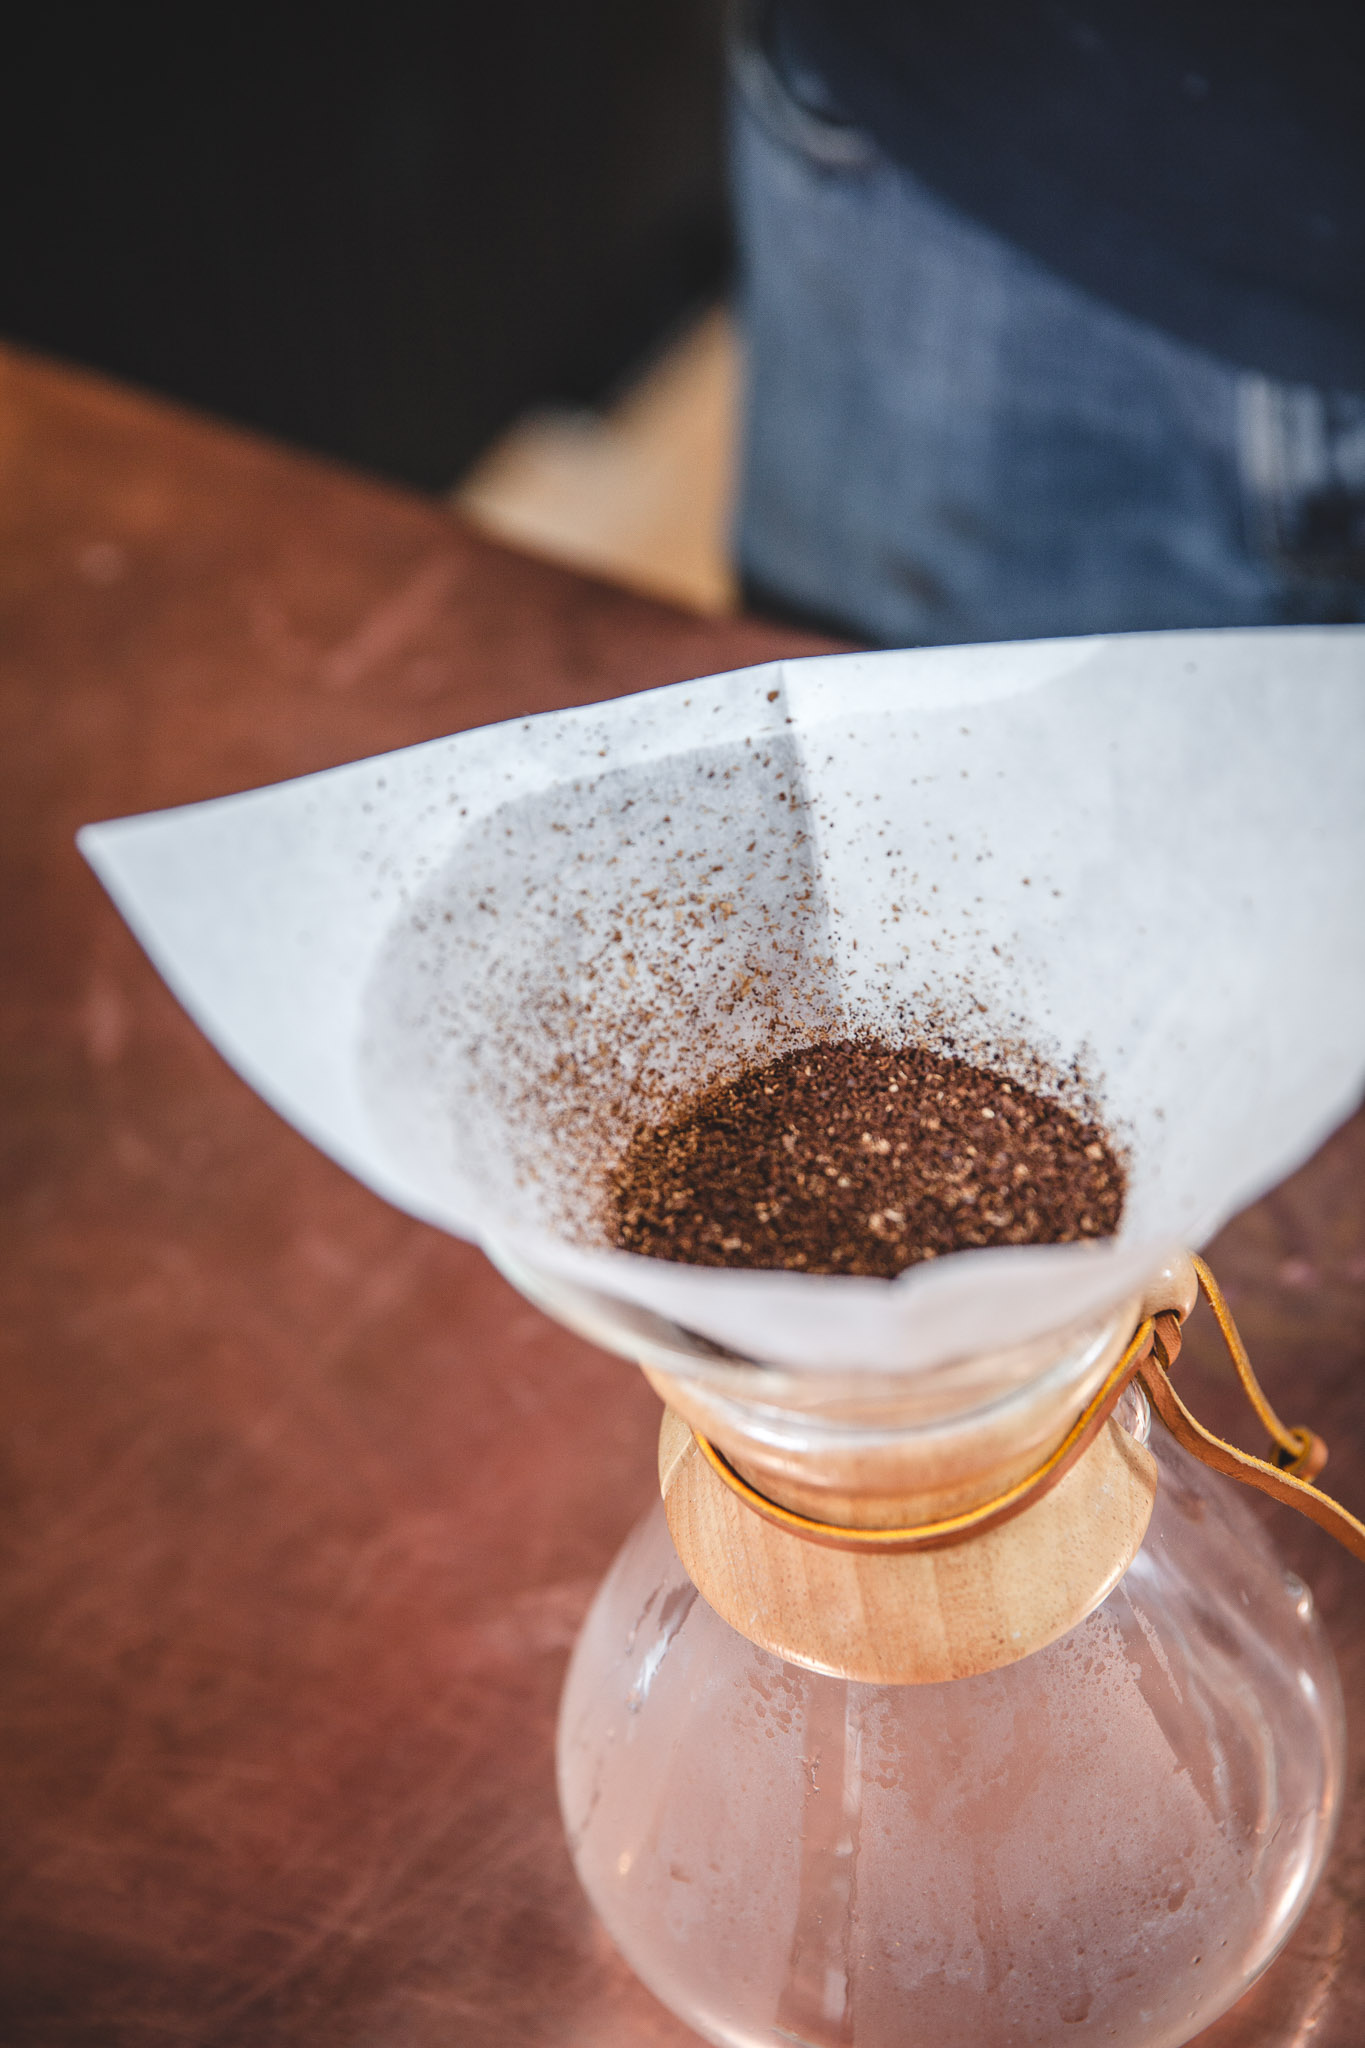 3. Add the ground coffee and gently shake the chemex to flatten the grinds. (This will allow for a more even pour.)